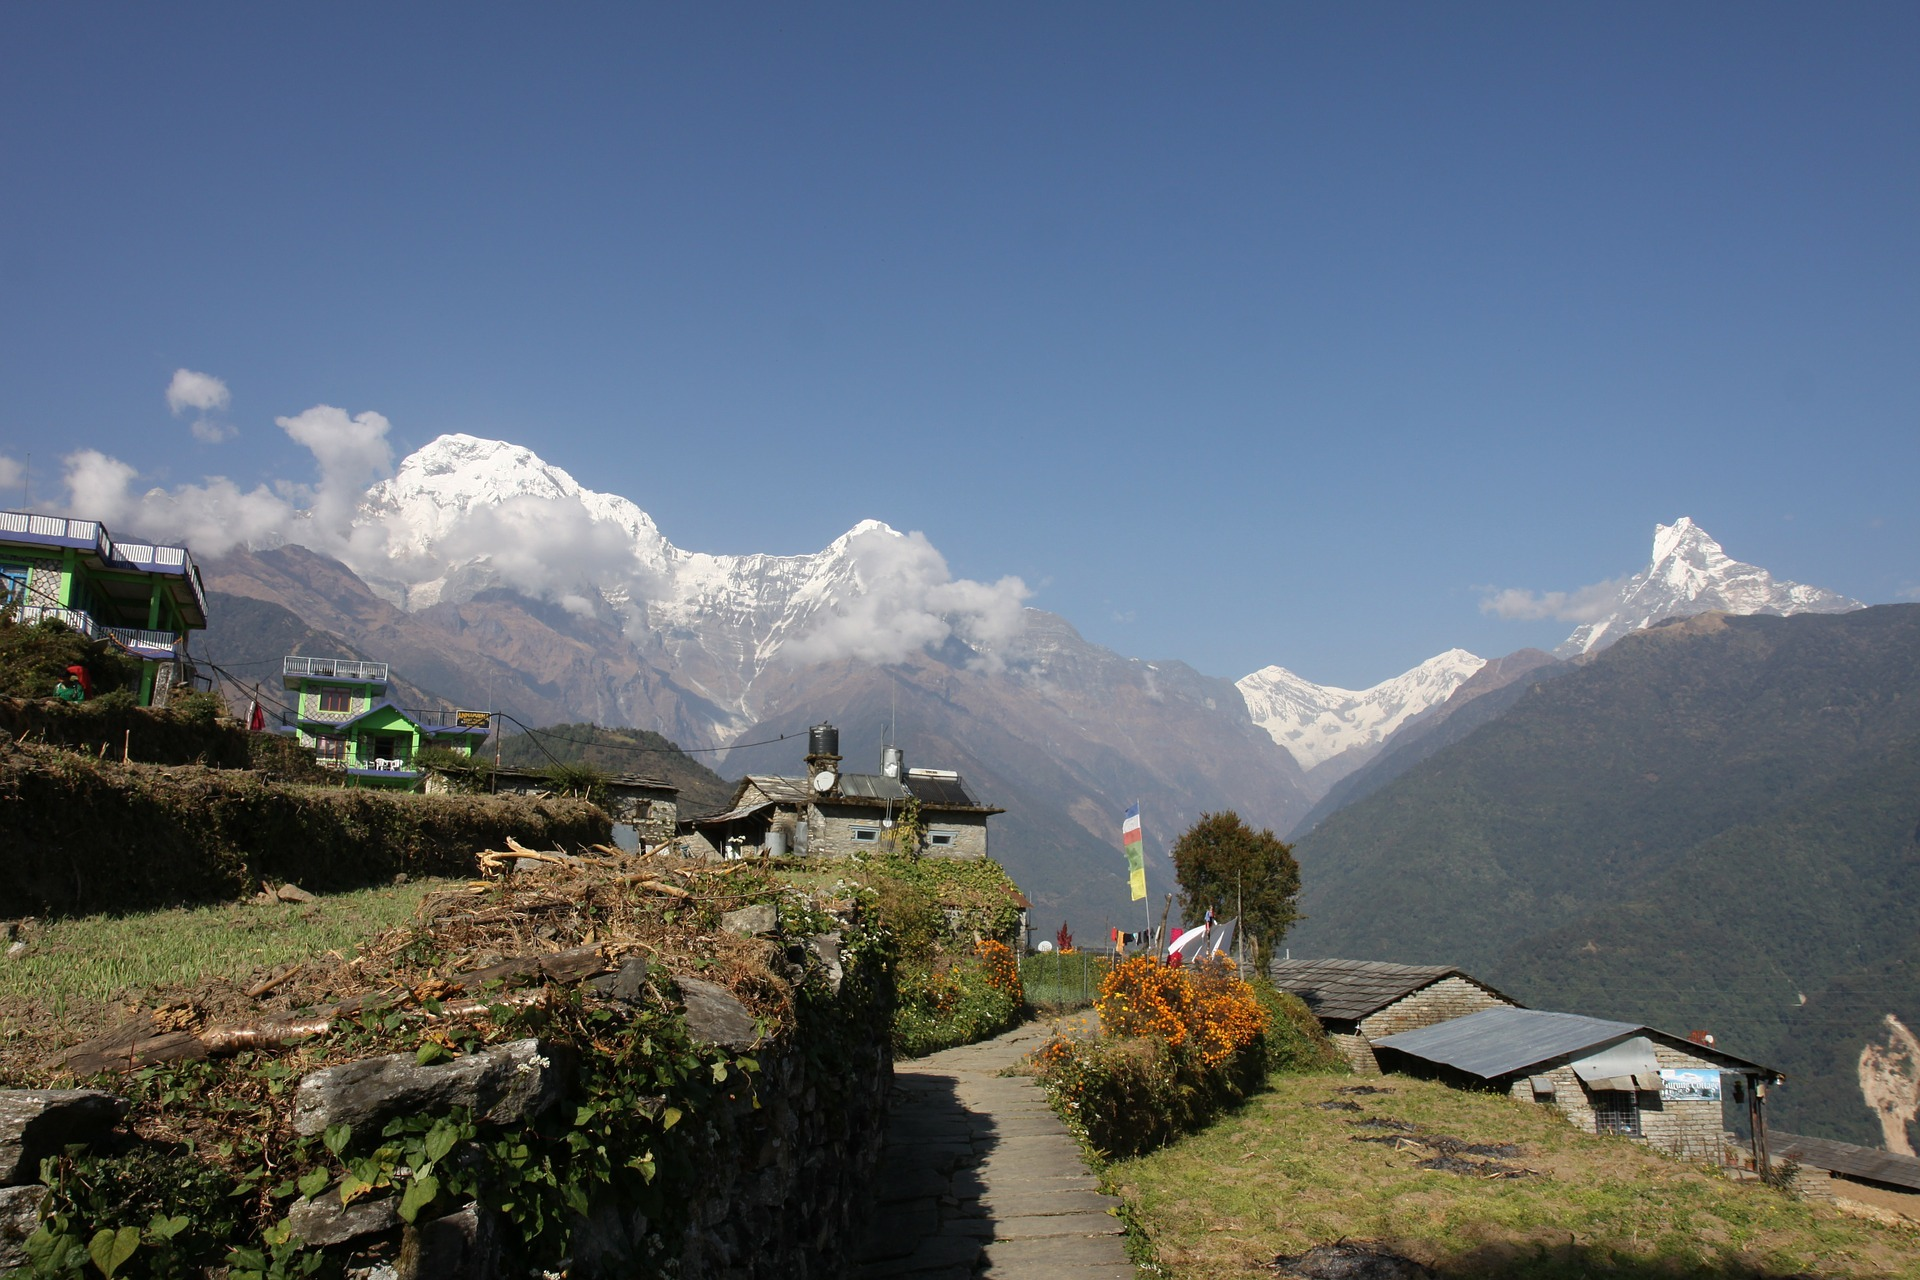 Hiking the Annapurna Circuit in Nepal - on my Travel Wishlist for 2020